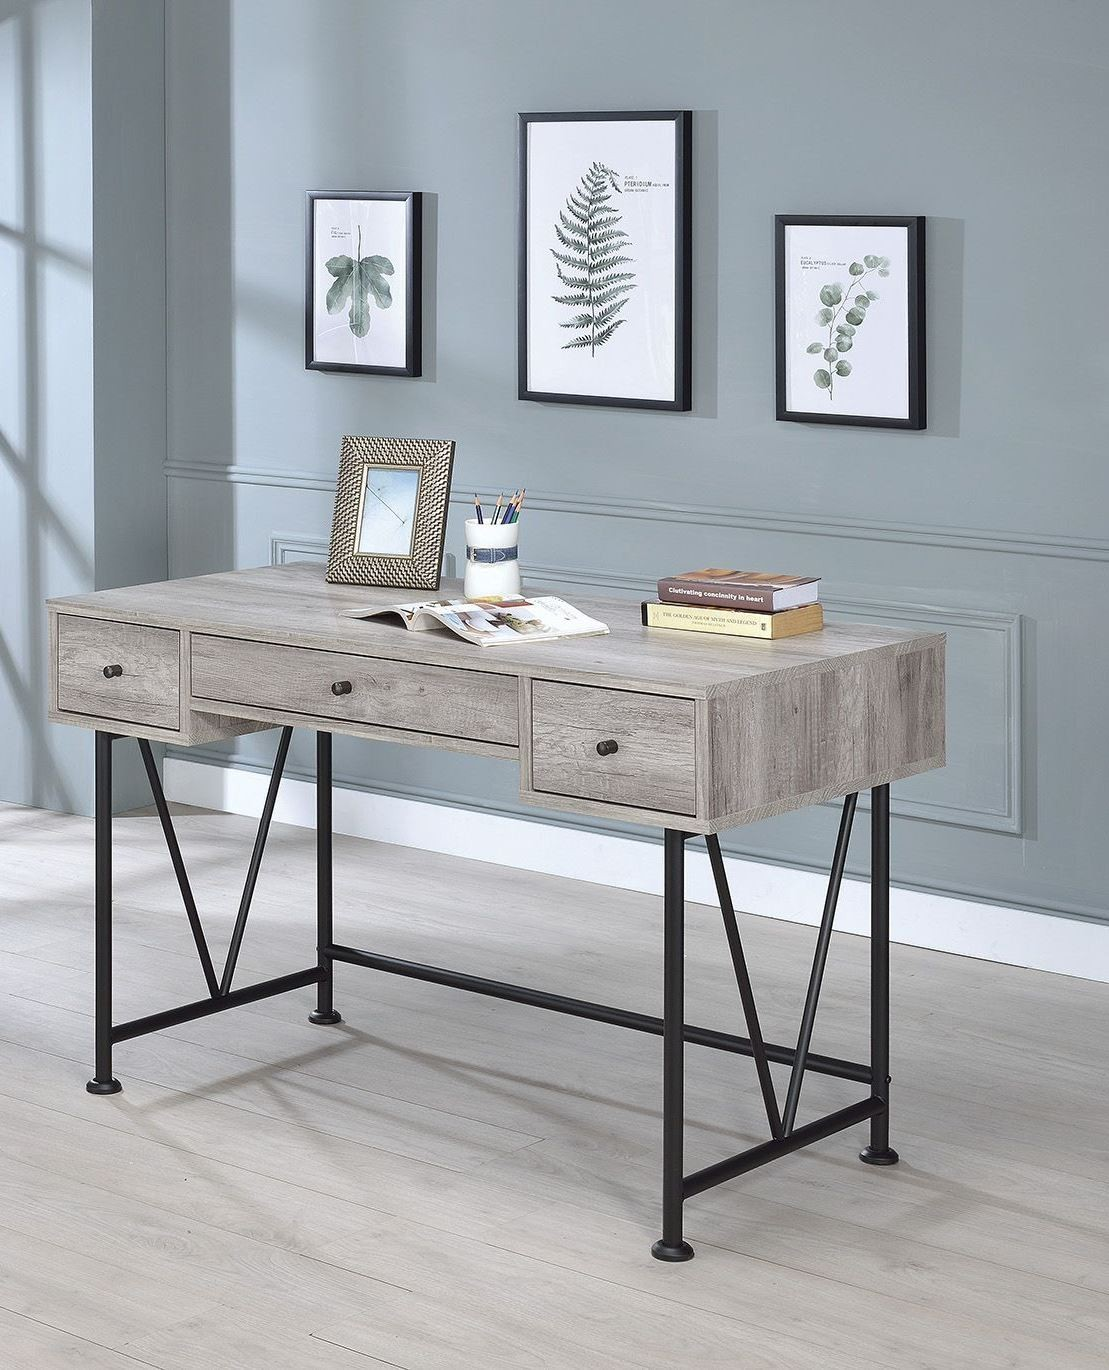 Guthrie Gray Driftwood Writing Desk from Coaster Coleman